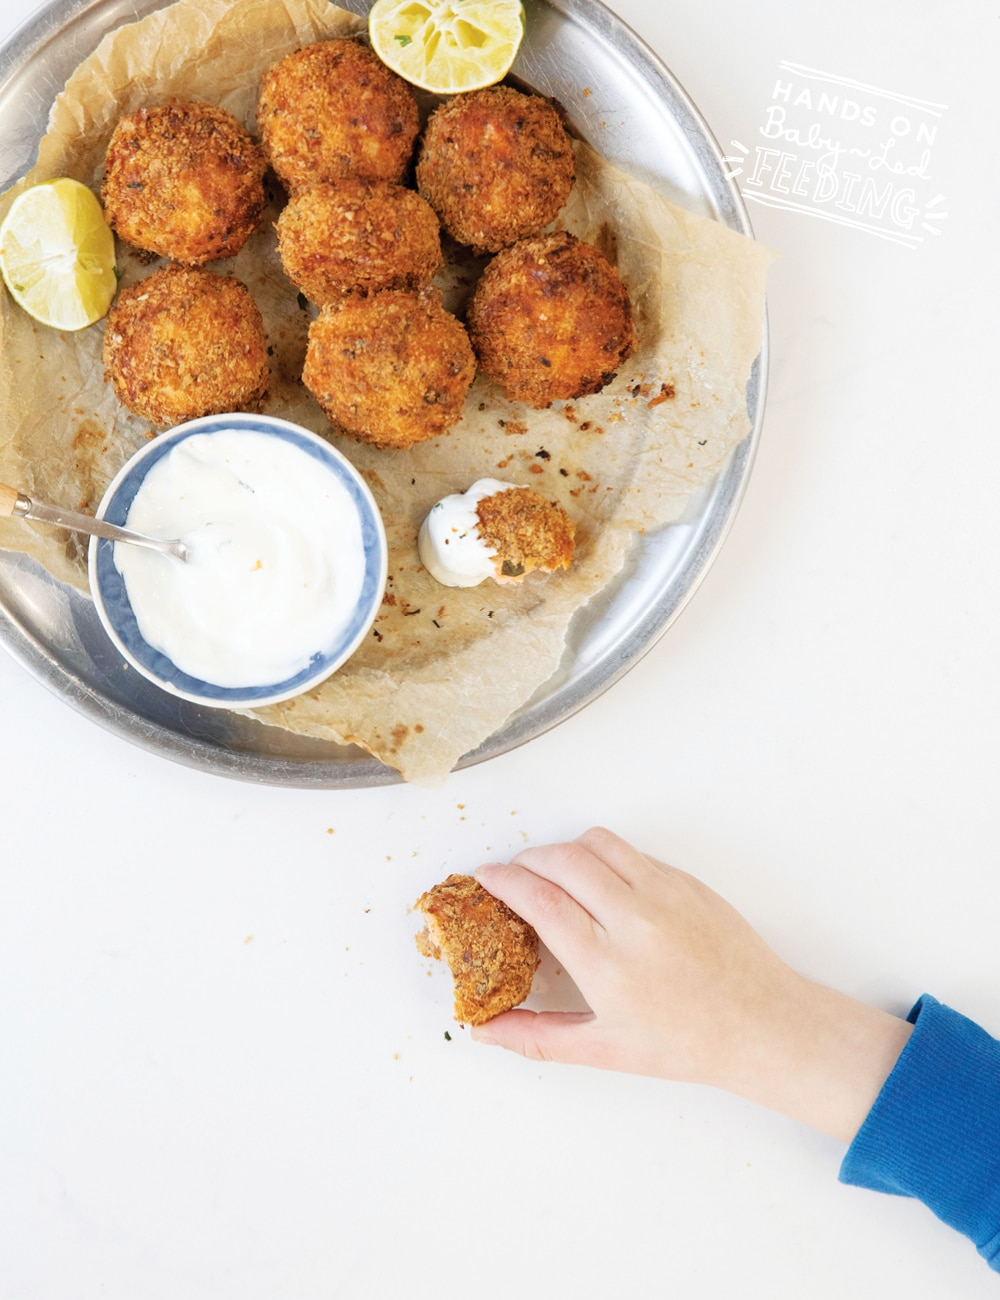 Delicious salmon nuggets that are just perfect for baby led weaning hands. These nuggets are the perfect baby led weaning finger food for babies.